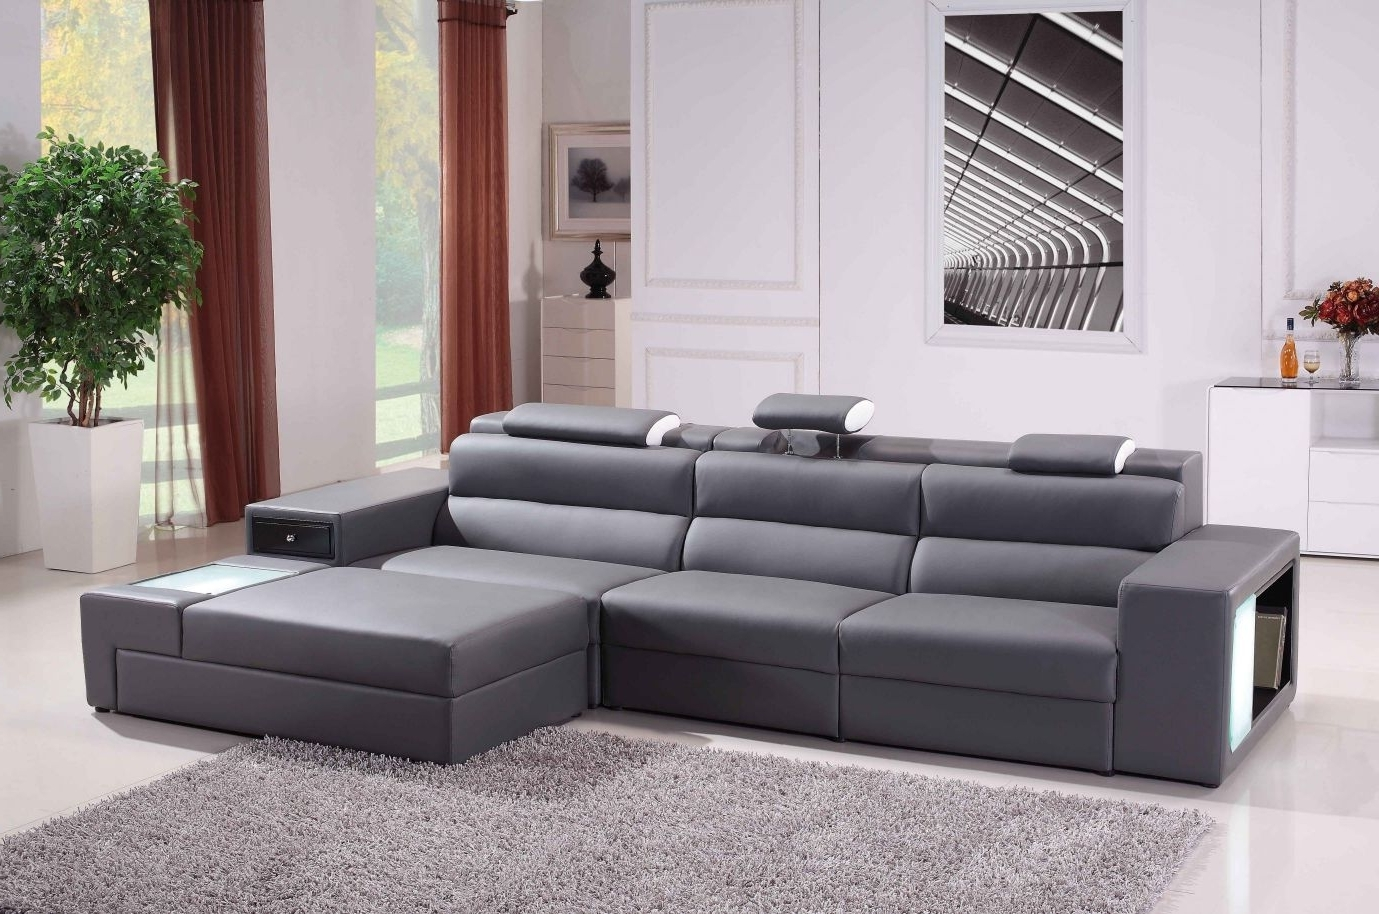 Recent High Quality Sectional Sofas Inside Stunning Bedroom Grey Couch Red Sofa Chaise Real Leather Picture (View 17 of 20)